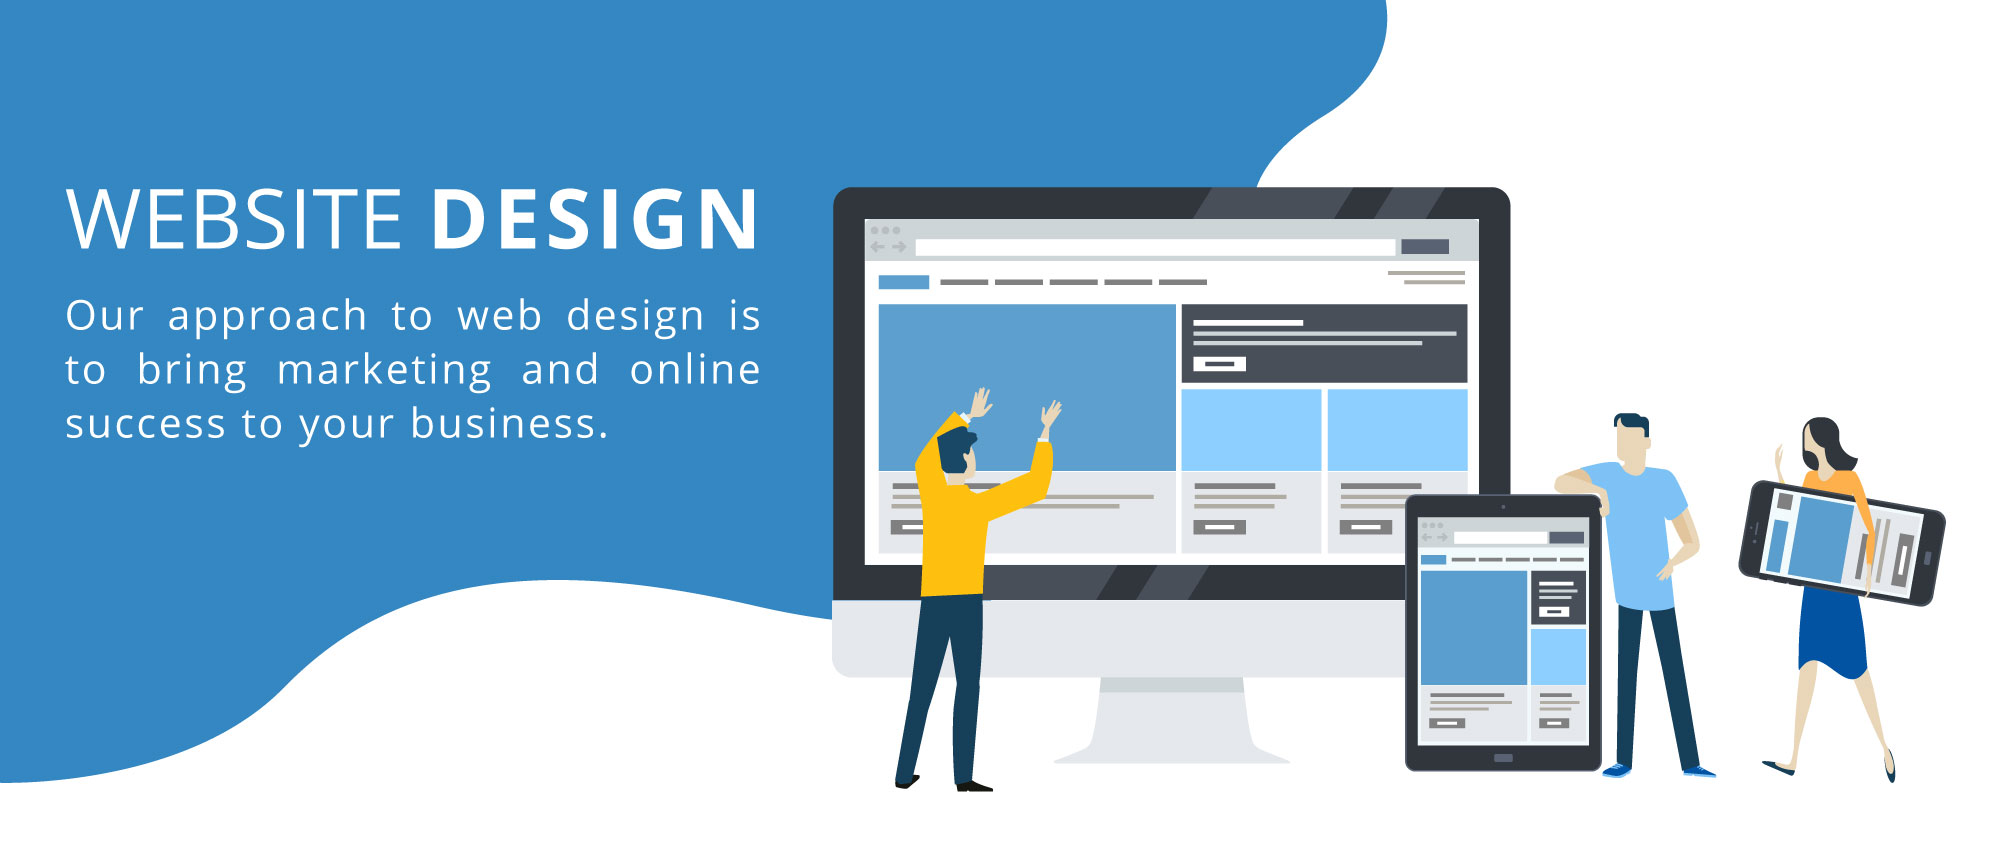 Website Design Lebanon, A bad site can quickly turn off your customers. Our team design and develop sites that'll really benefit your business